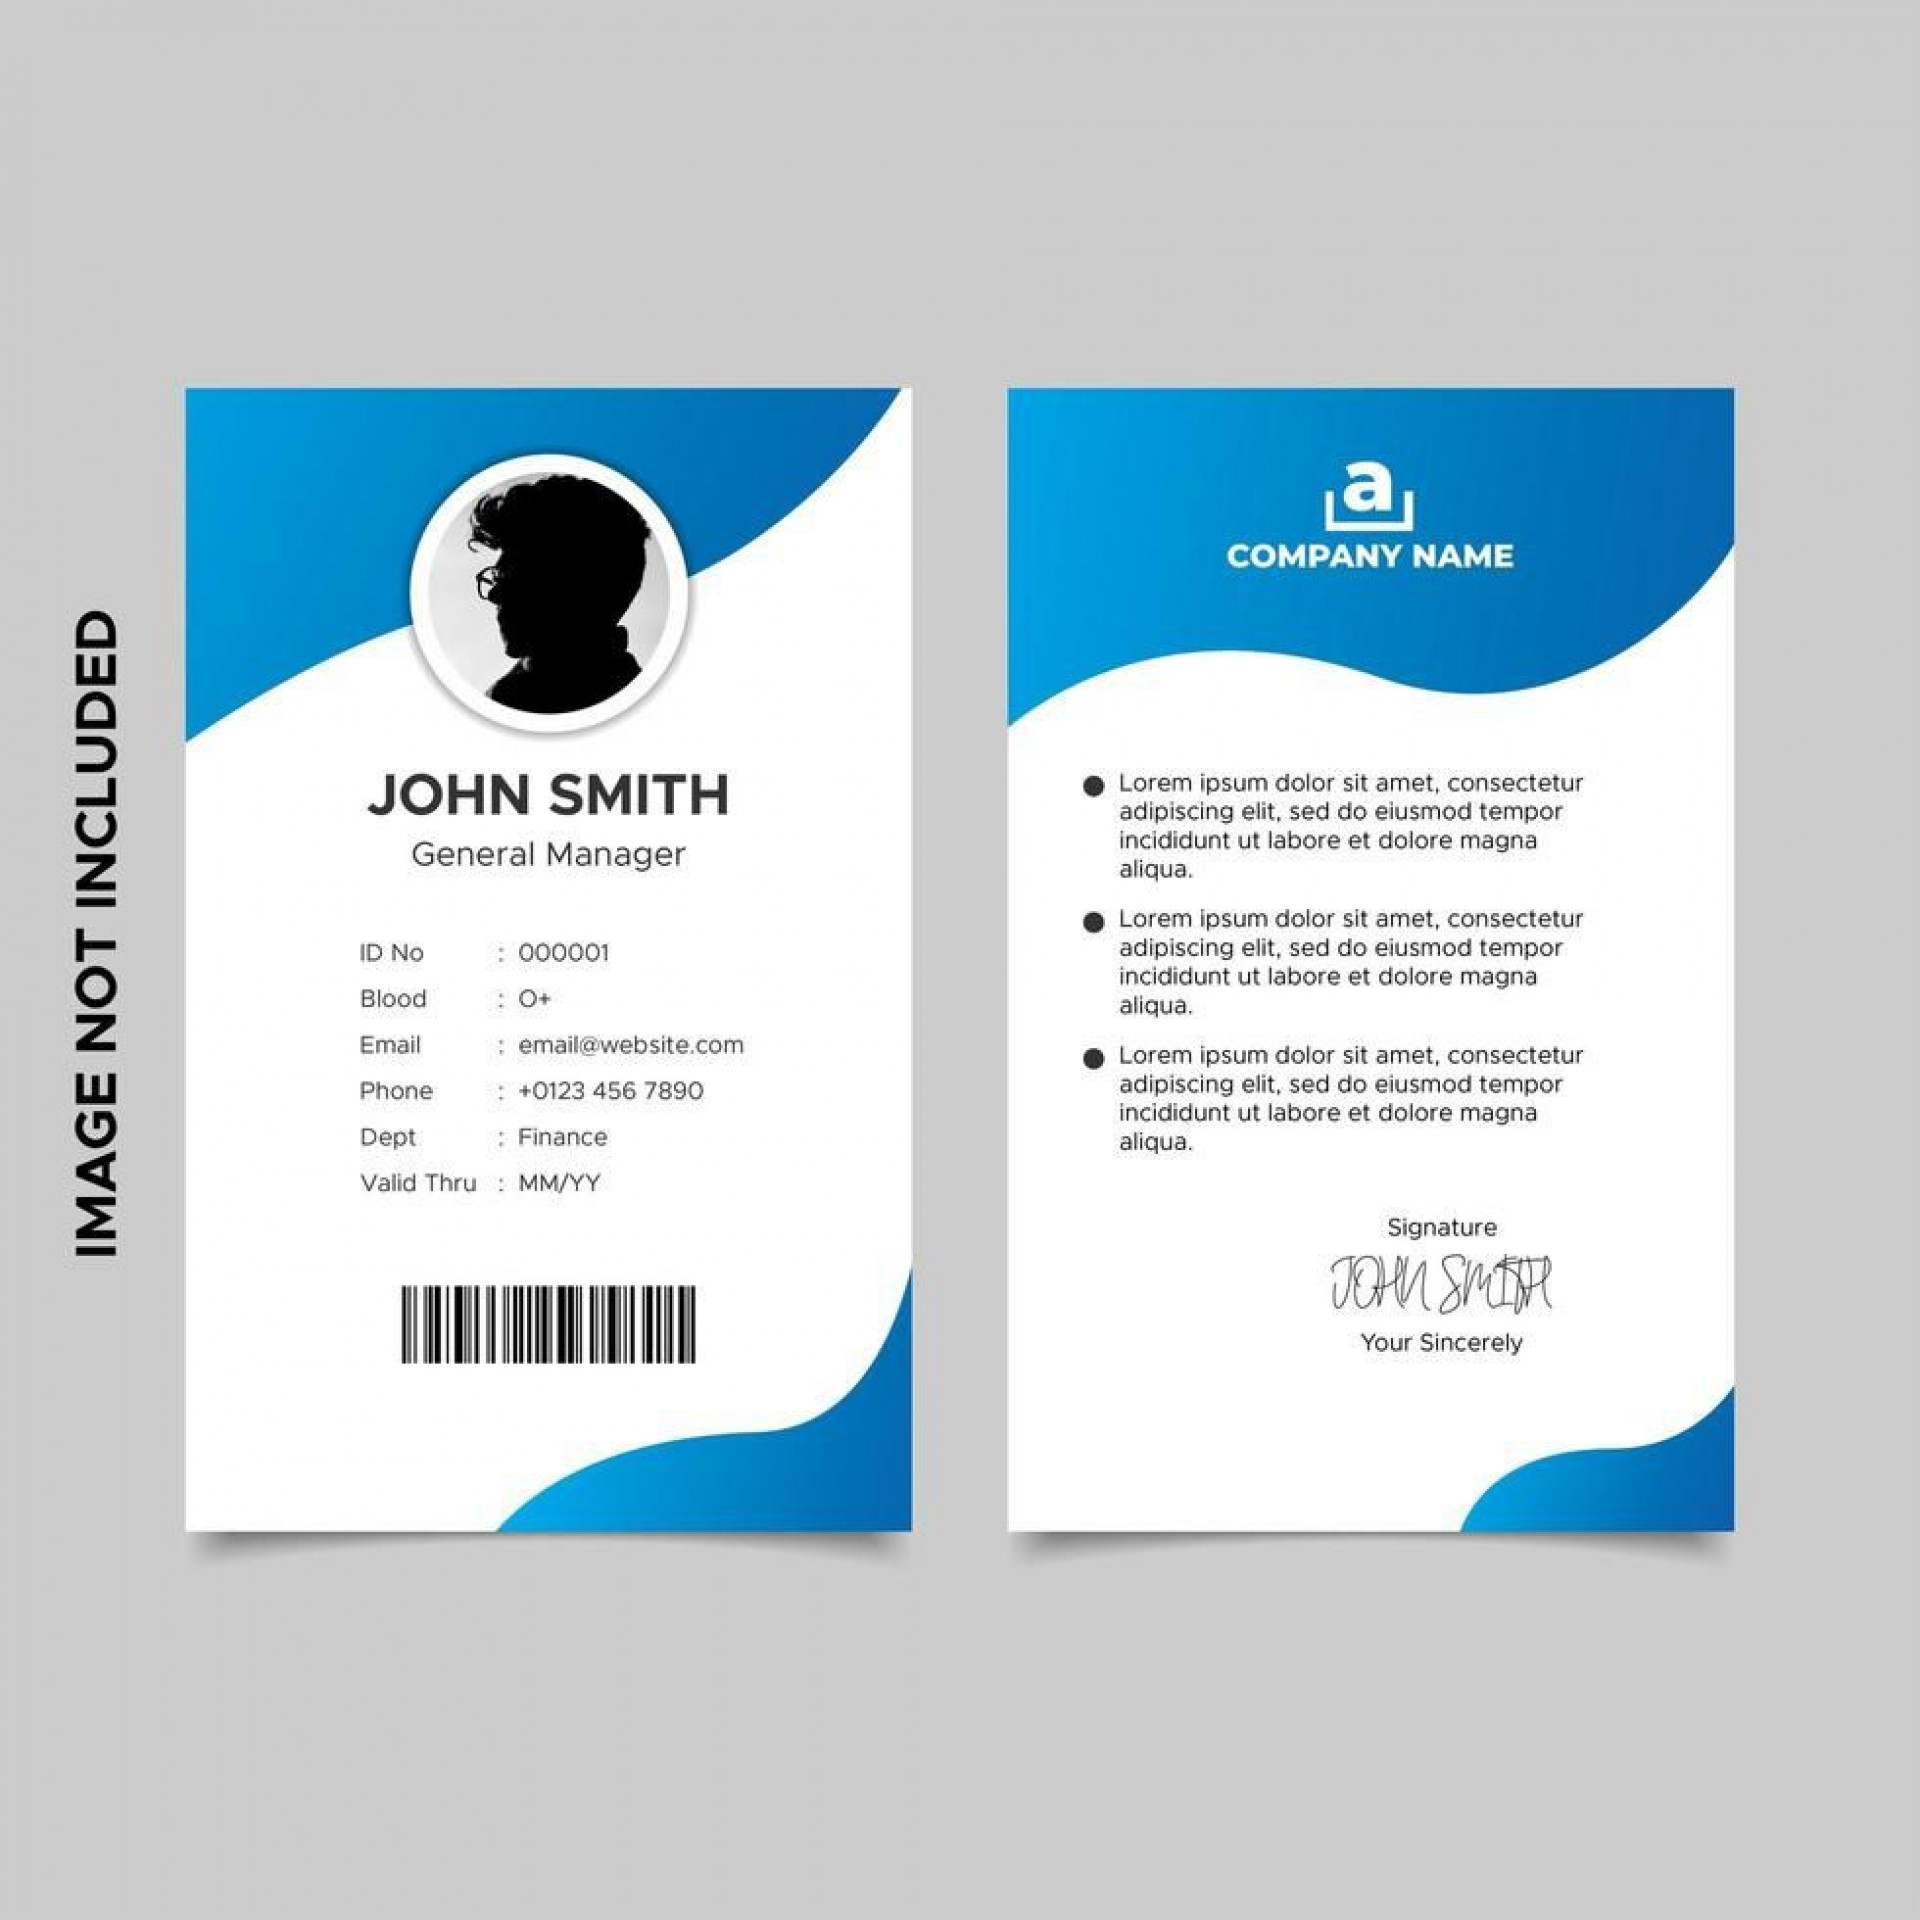 006 Exceptional Free Id Badge Template High Definition  Templates Card Ai Uk Illustrator1920